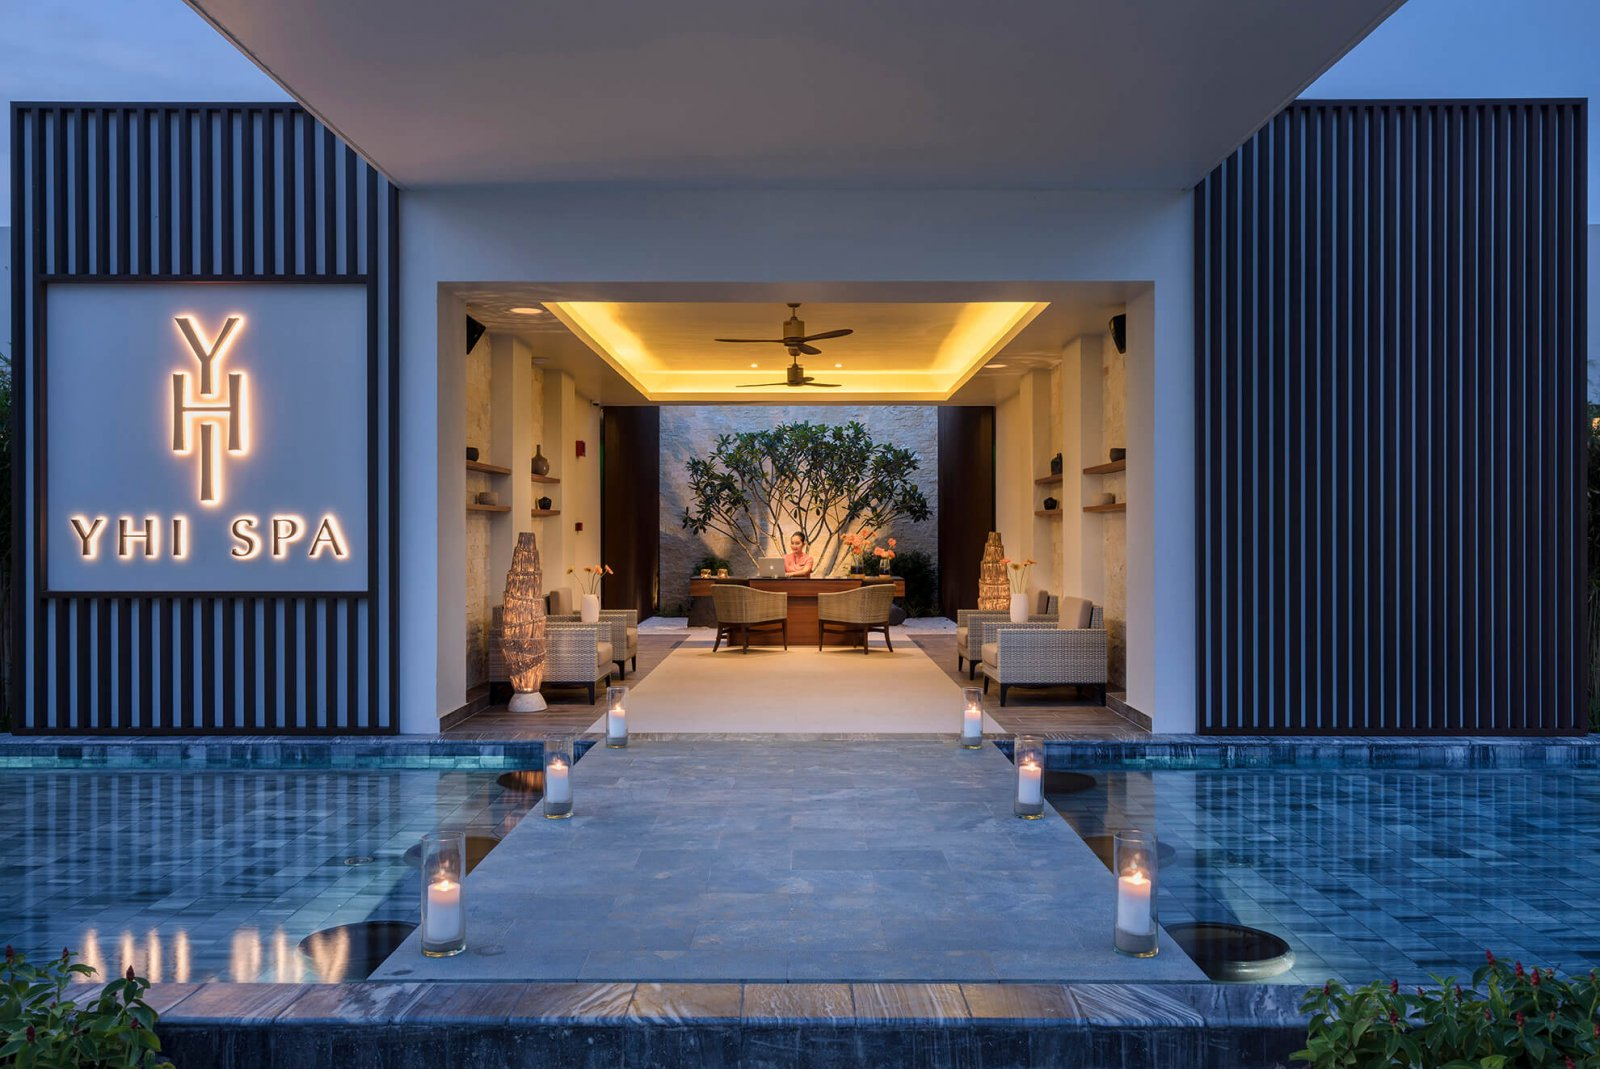 Entrance to the Yhi Spa at the Melia Ho Tram